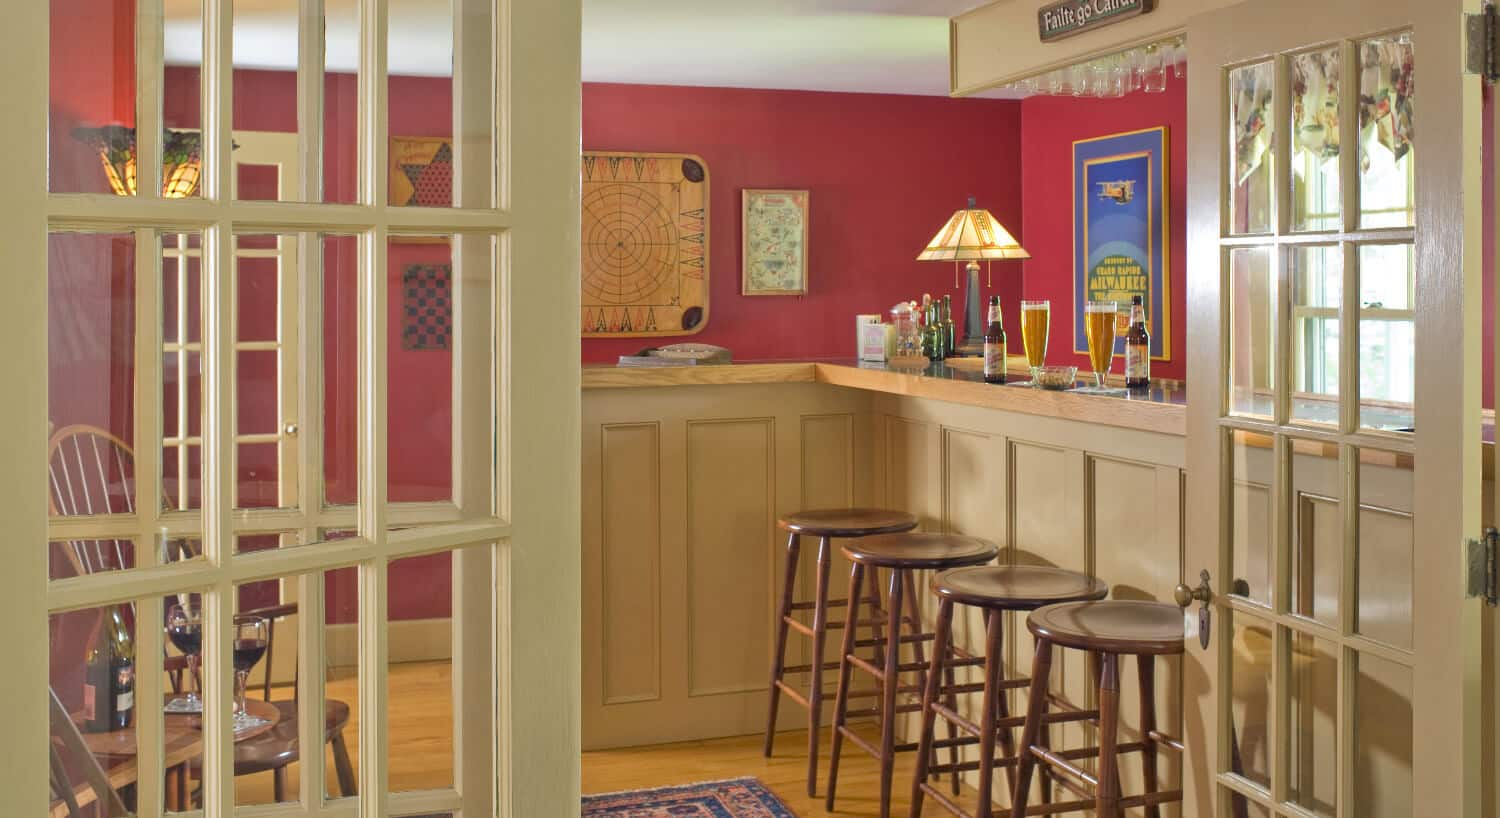 Tall bar with four stools in a room with red walls.